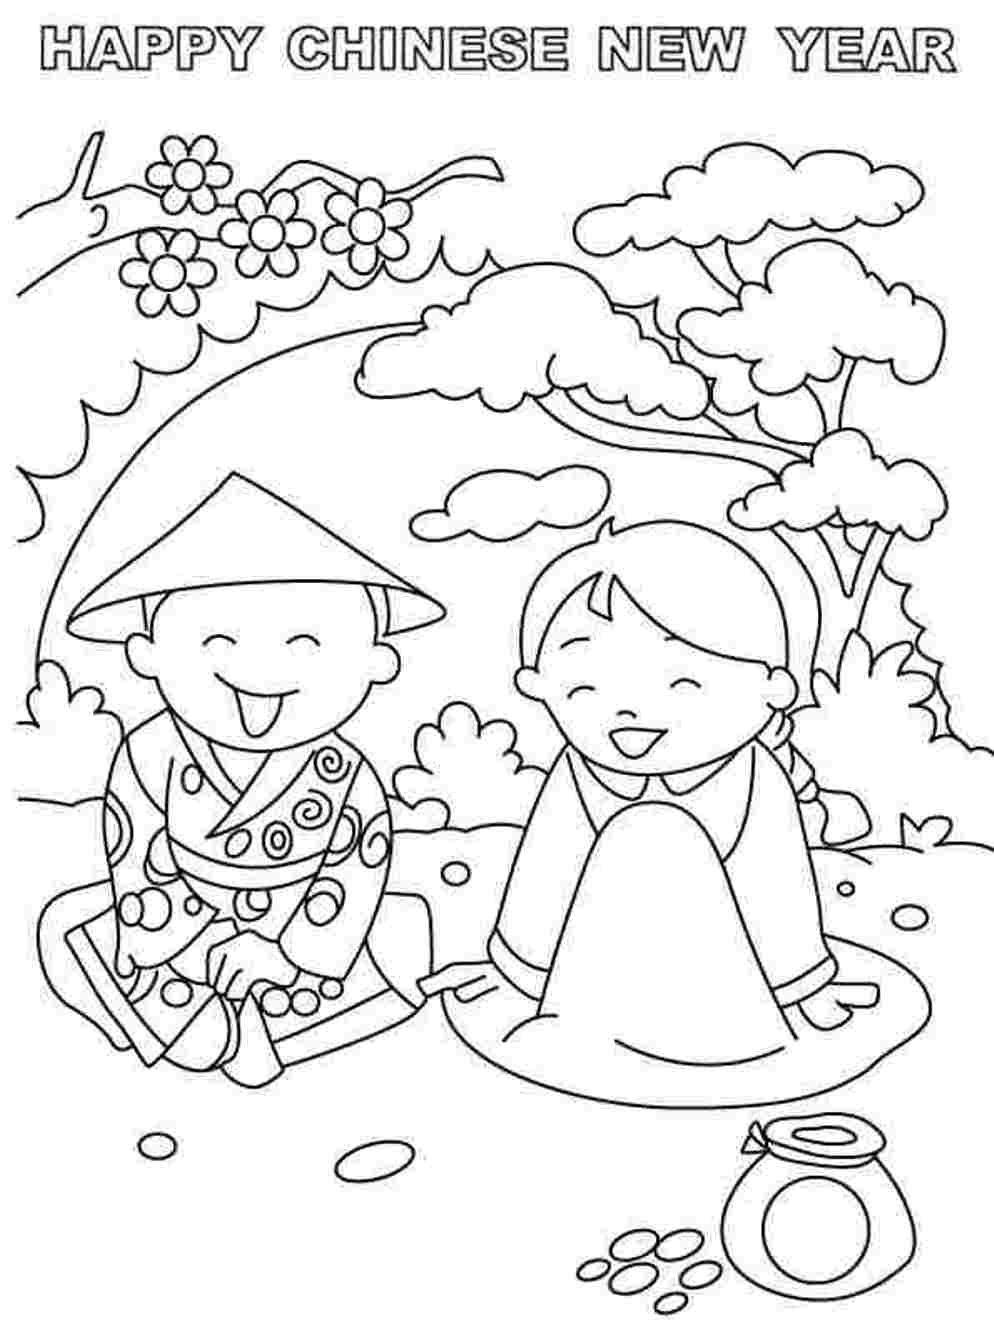 It's just a photo of Amazing free chinese new year coloring pages